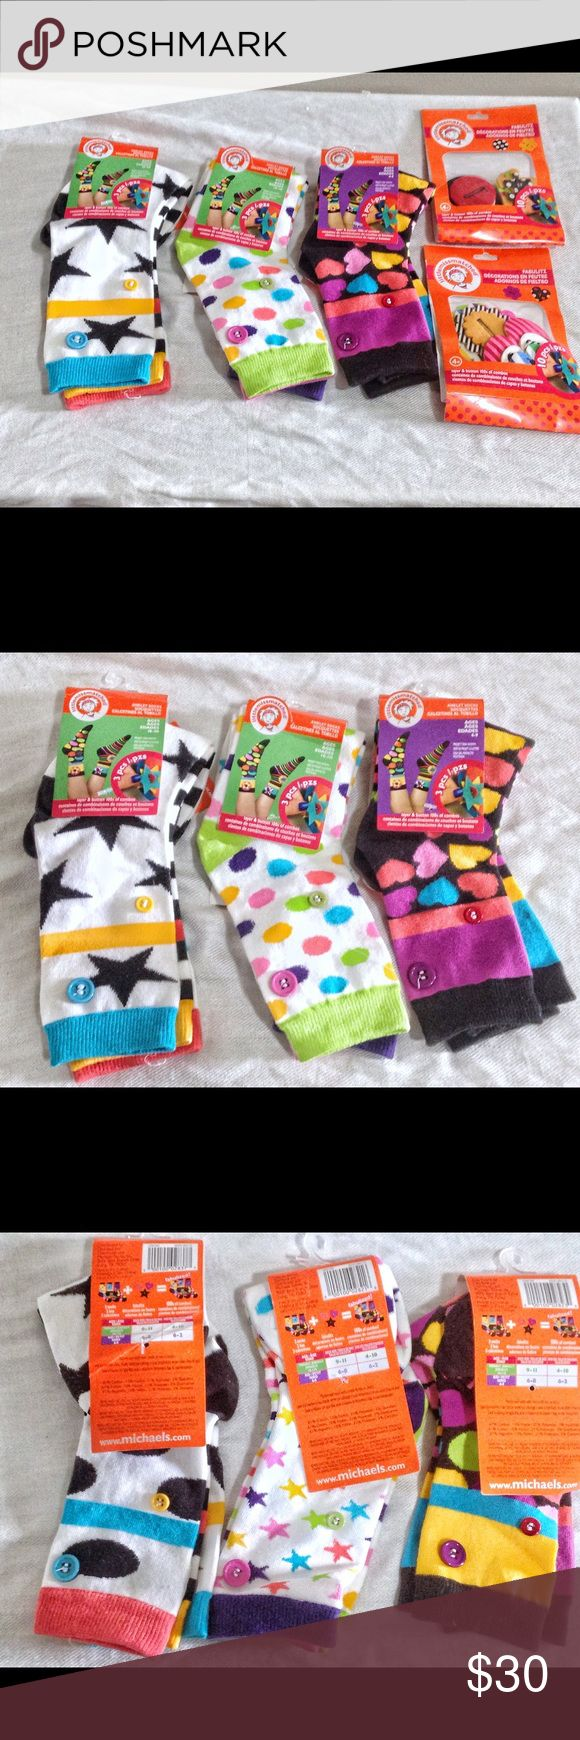 """NWT Kids Little Miss Matched Sock Bundle Three pairs of girls little miss matched socks!  Each sock had two buttons on ankle where you can attack """"sock charms"""". Two packets of sock charms included: flowers and hearts and circles and puzzles.  All new with tags. One bonus set of sock charms new in plastic without tag is also included (socks and cakes).  💵Offers Welcome 💰Bundle Discount 📦Ships in 1-2 days Accessories Socks & Tights"""